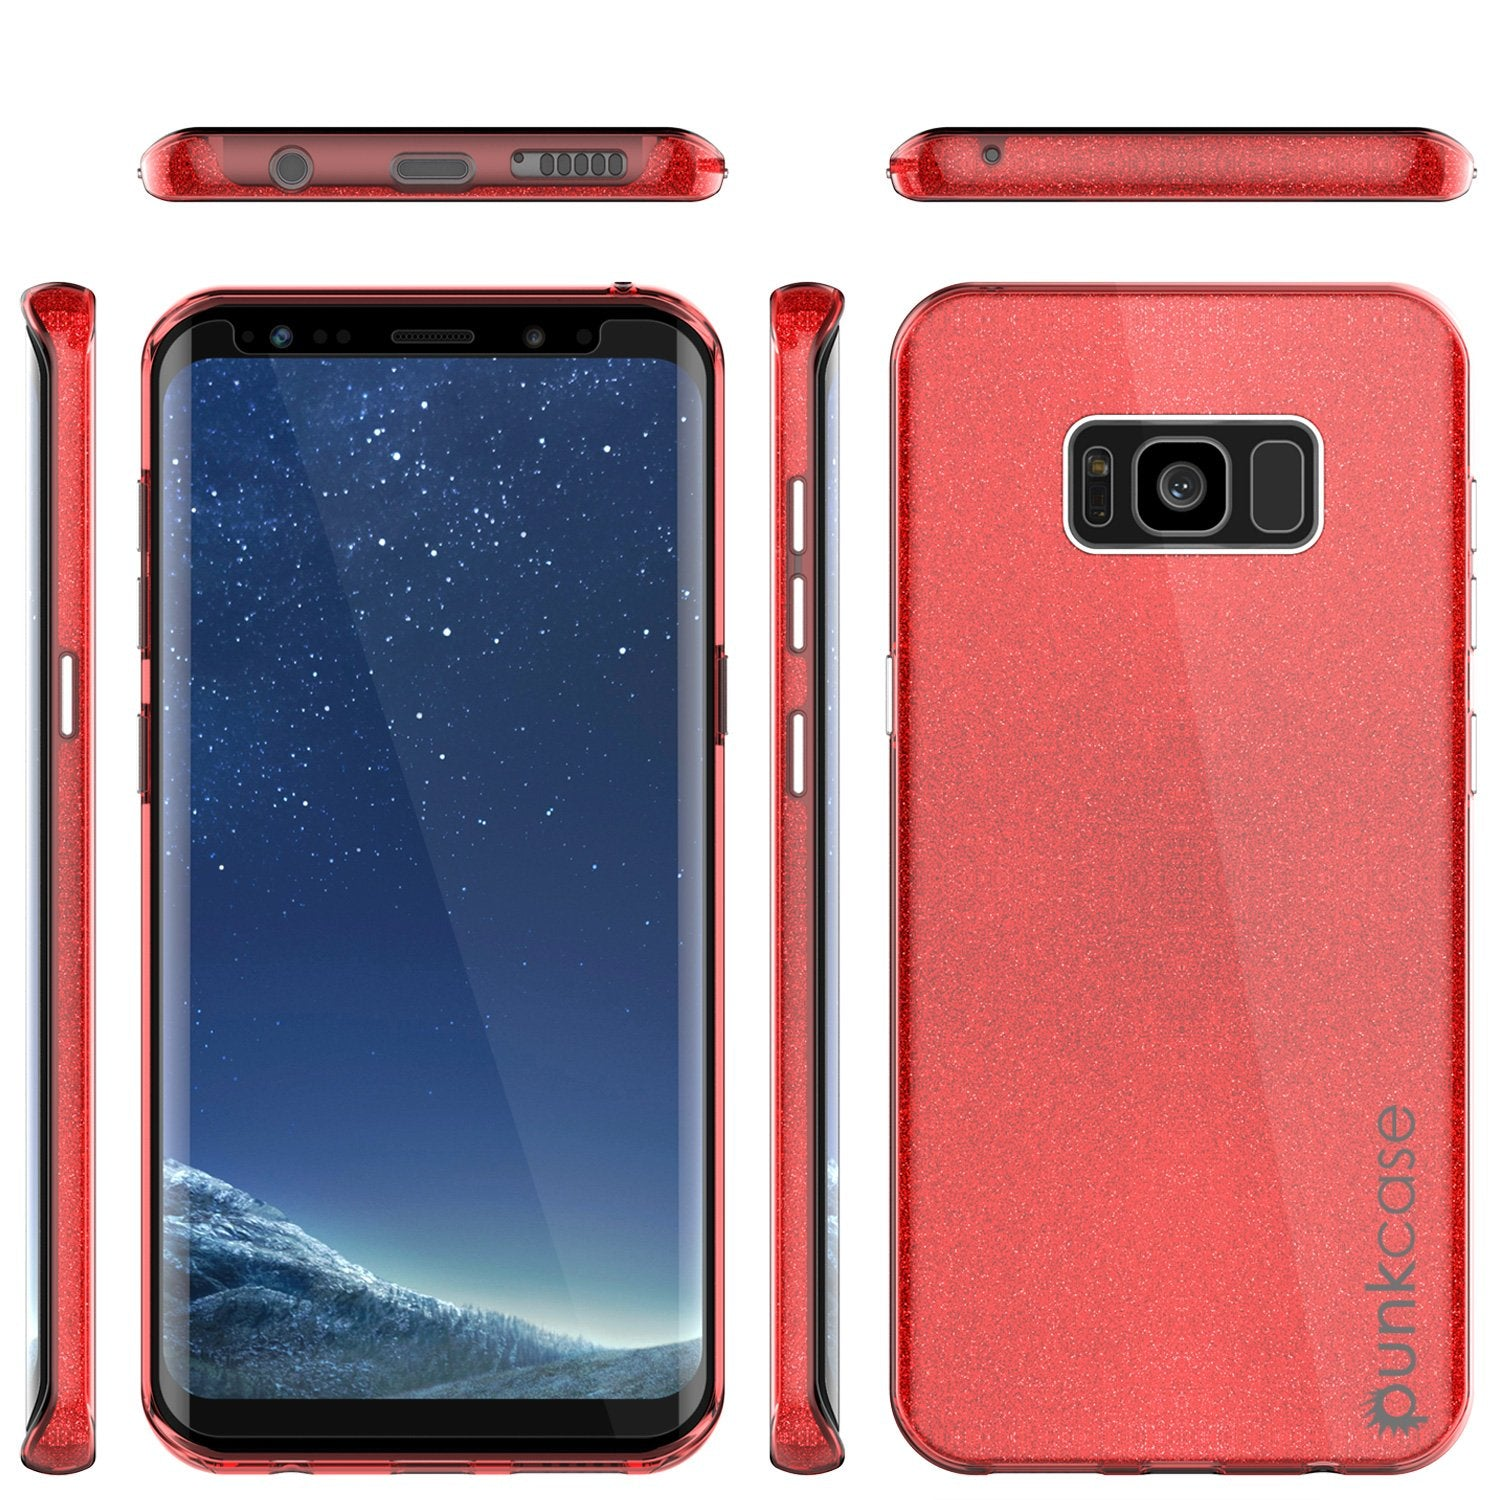 Galaxy S8 Plus Case, Punkcase Galactic 2.0 Series Ultra Slim Protective Armor TPU Cover [Red] - PunkCase NZ